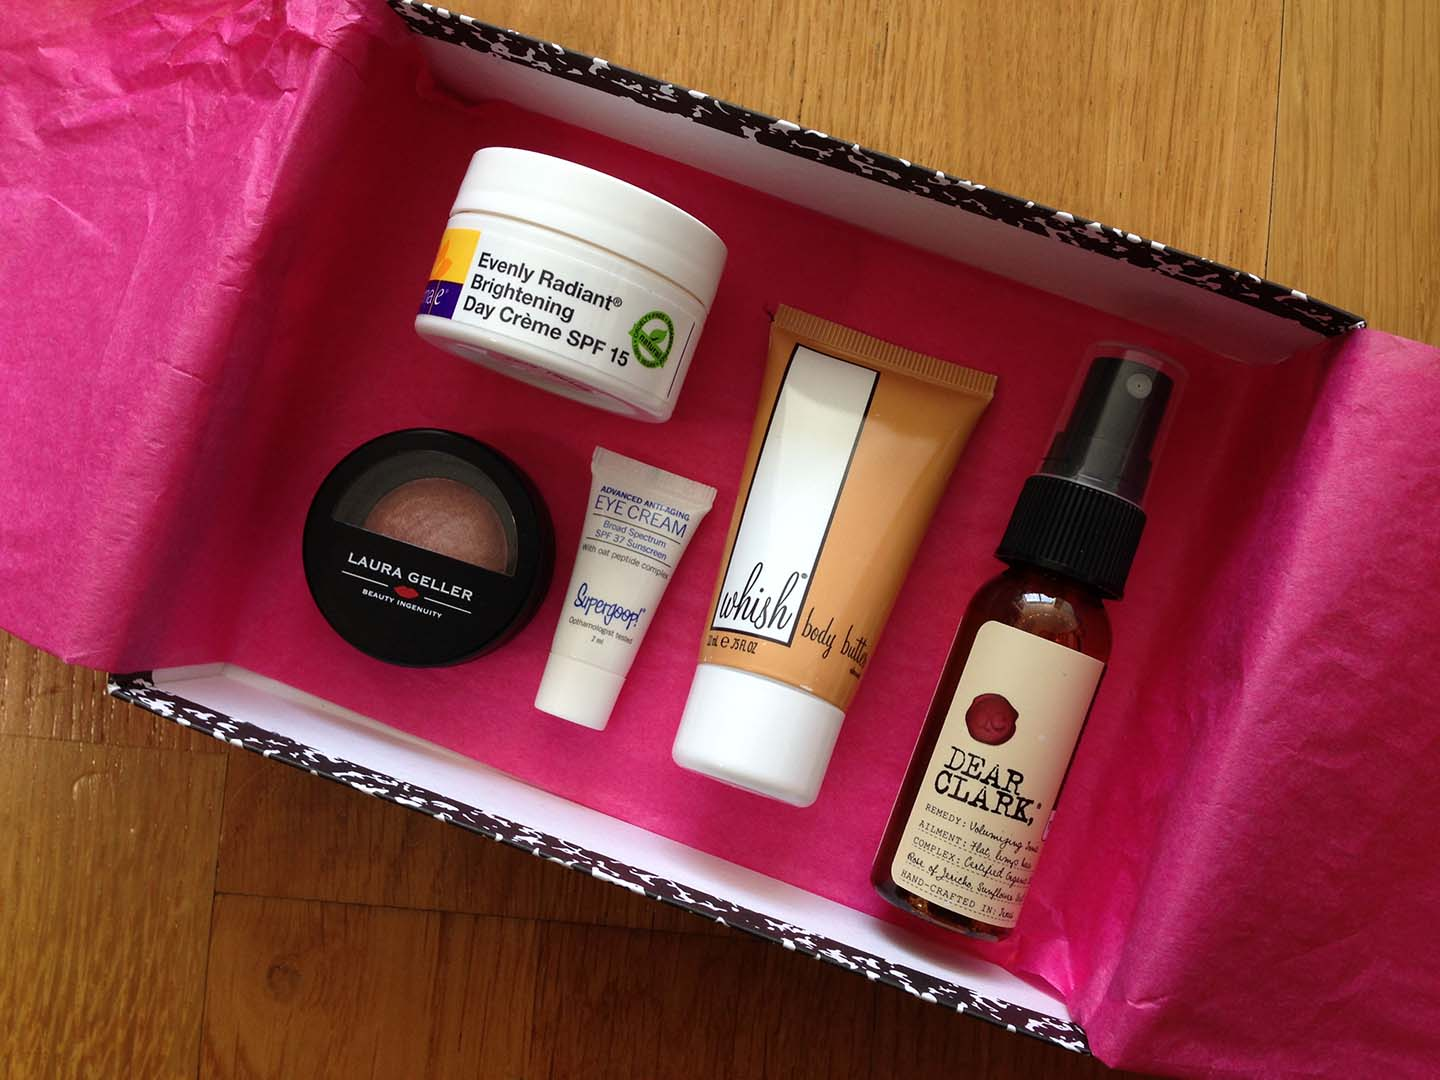 How Ipsy, Birchbox and Allure Sample Society Stack Up - Life ...